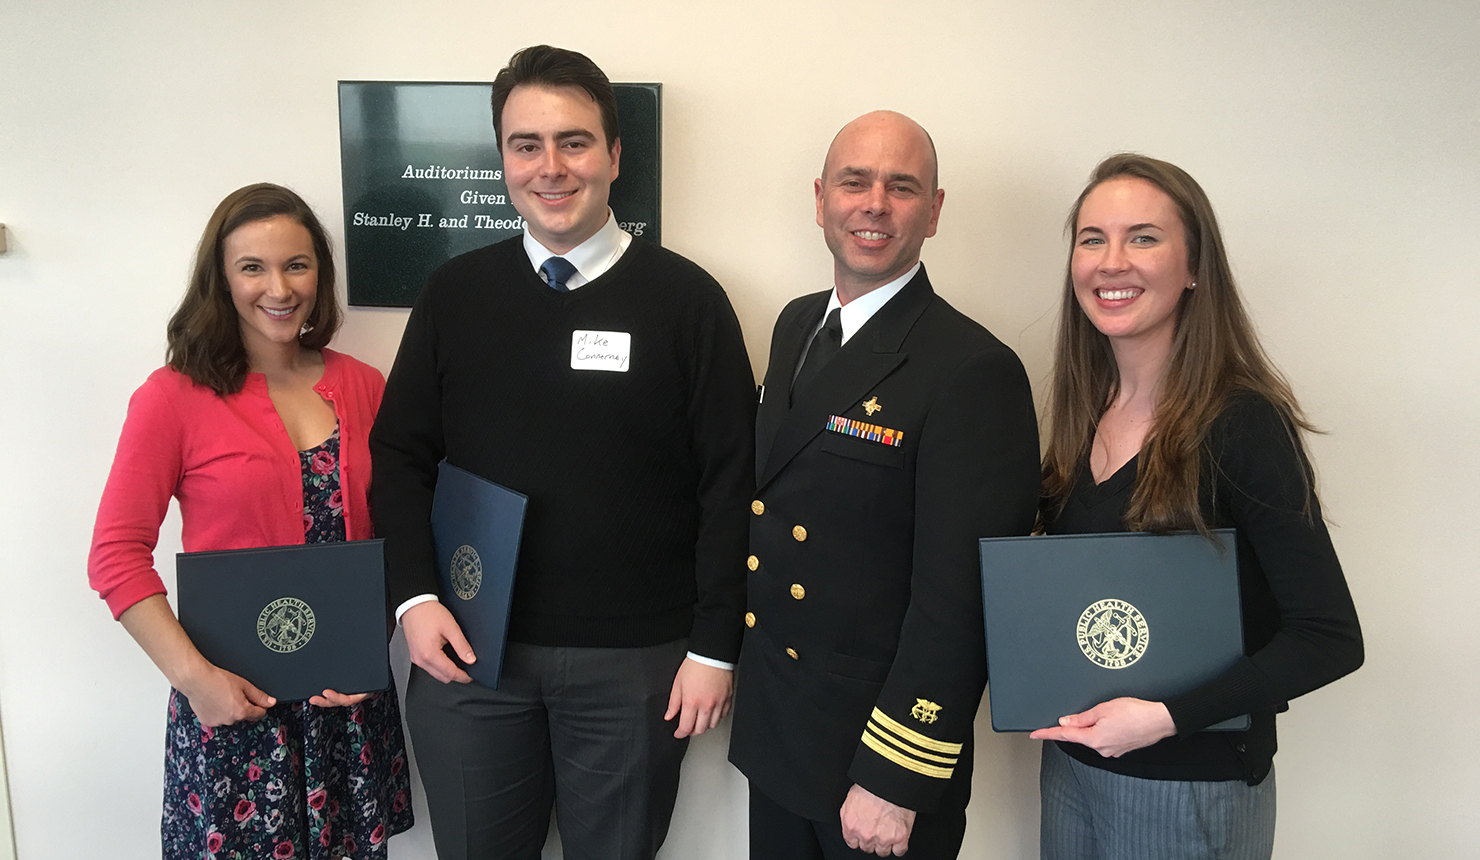 Caledonia Moore '18, Michael Connerney '18, and Claire Hogue '18 were presented their Excellence in Public Health Awards by Lt. Commander Kent A. Conforti, MLS (ASCP) of the U.S. Public Health Service.